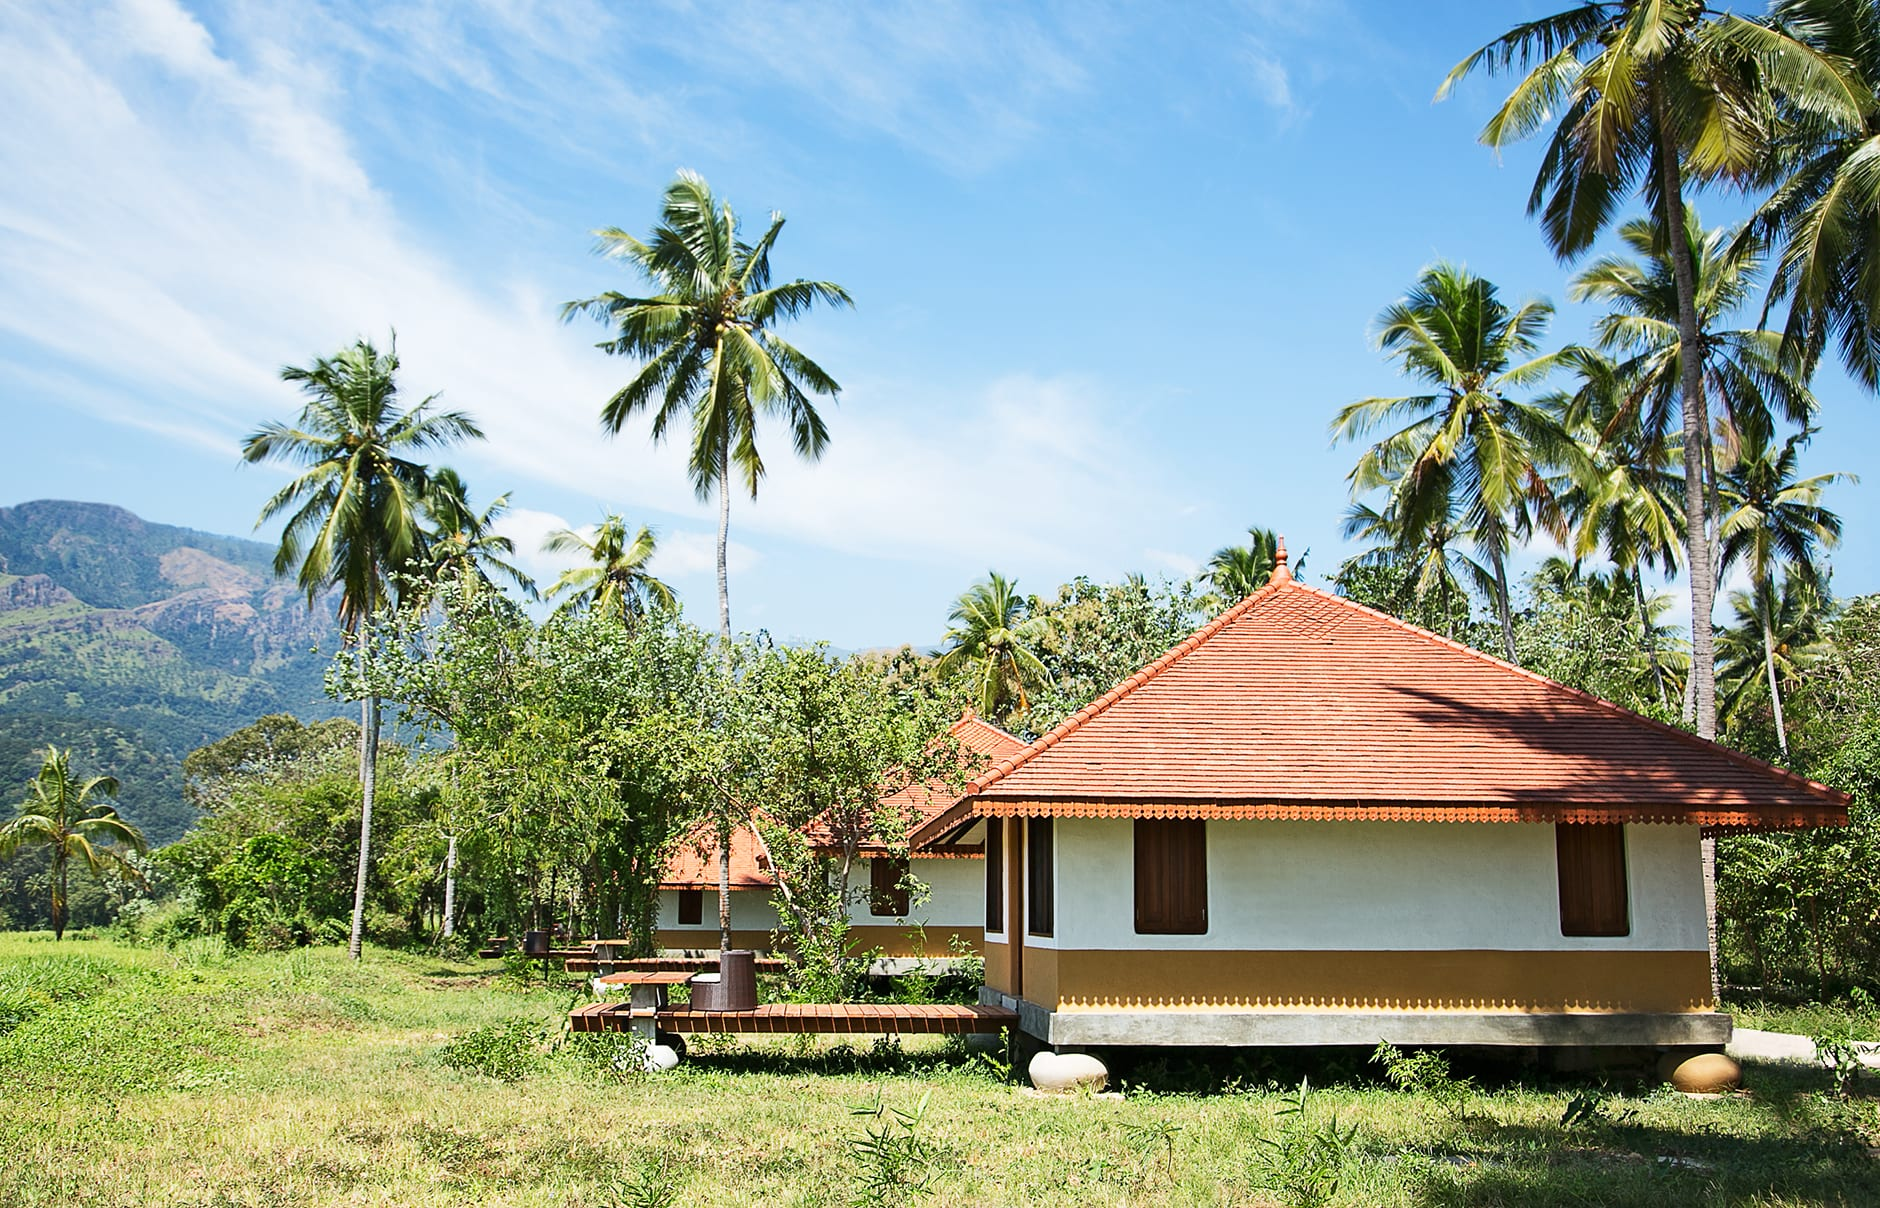 Jetwing Kaduruketha, Wellawaya, Sri Lanka. Hotel Review by TravelPlusStyle. Photo © Jetwing Hotels